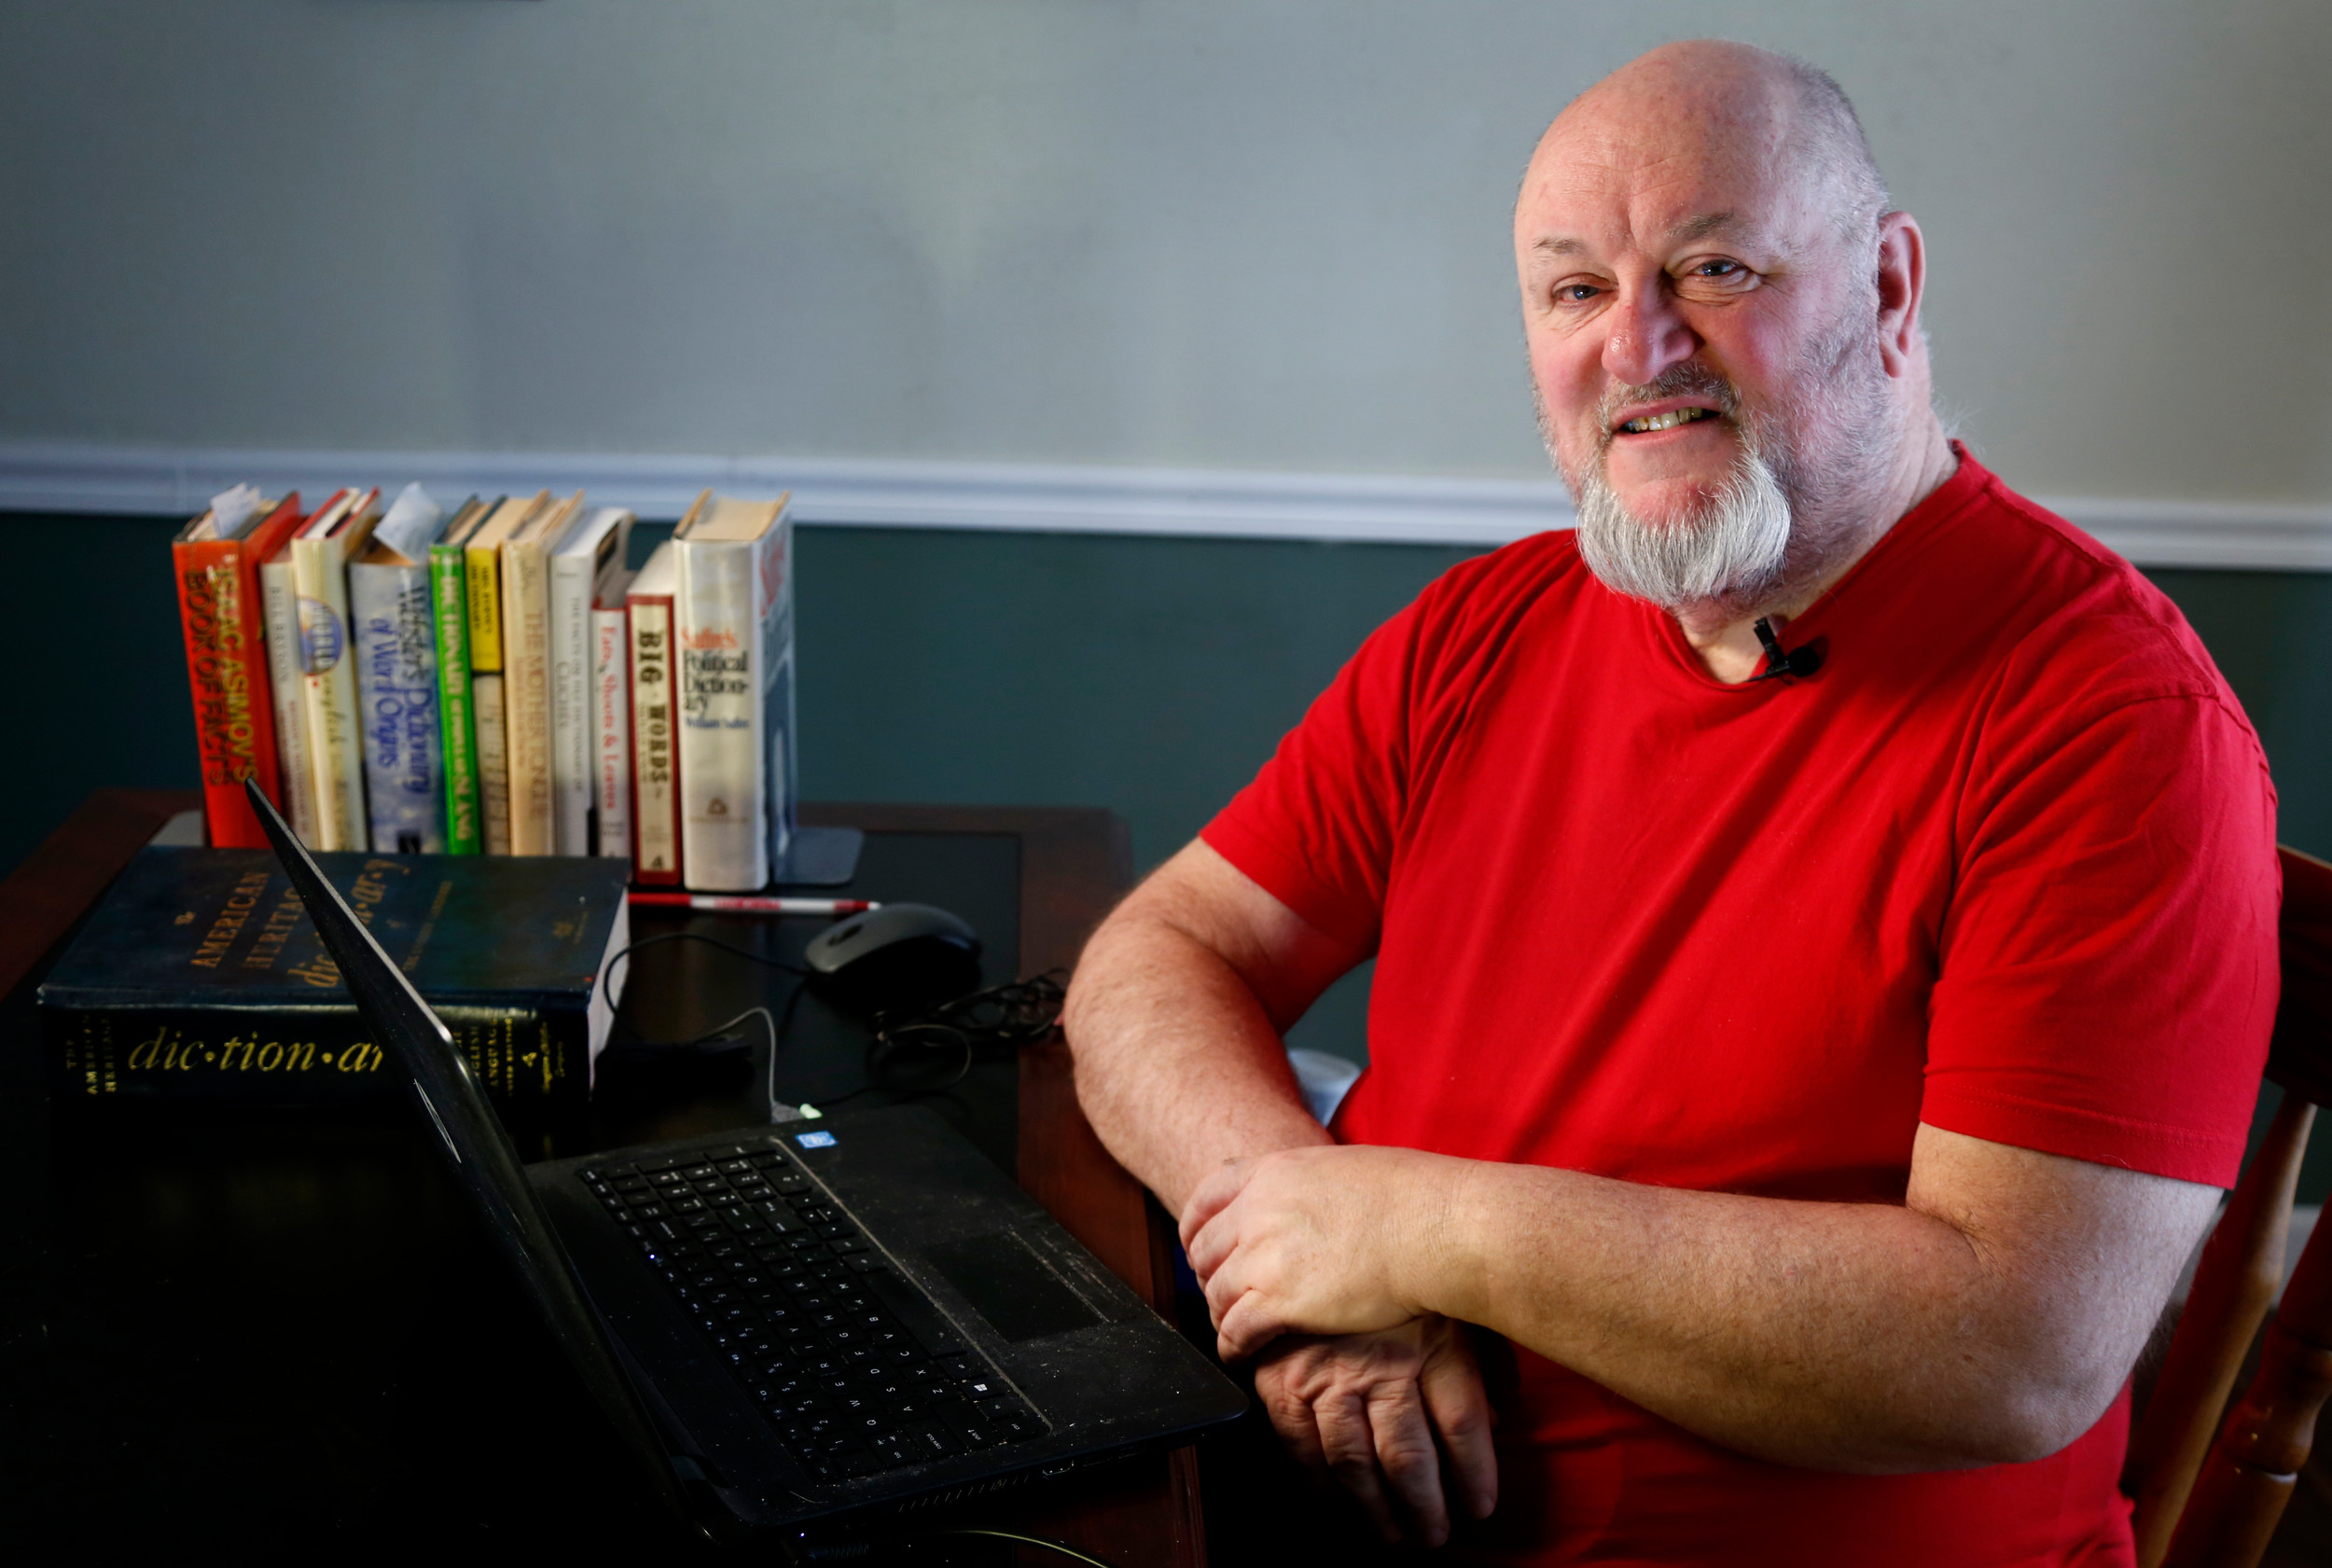 AP PHOTOChris Strolin created the online Omnificent English Dictionary in Limerick Form, or OEDILF for short, and with the help of contributors has published more than 97,000 definitions of words in limerick form since it began in 2004.